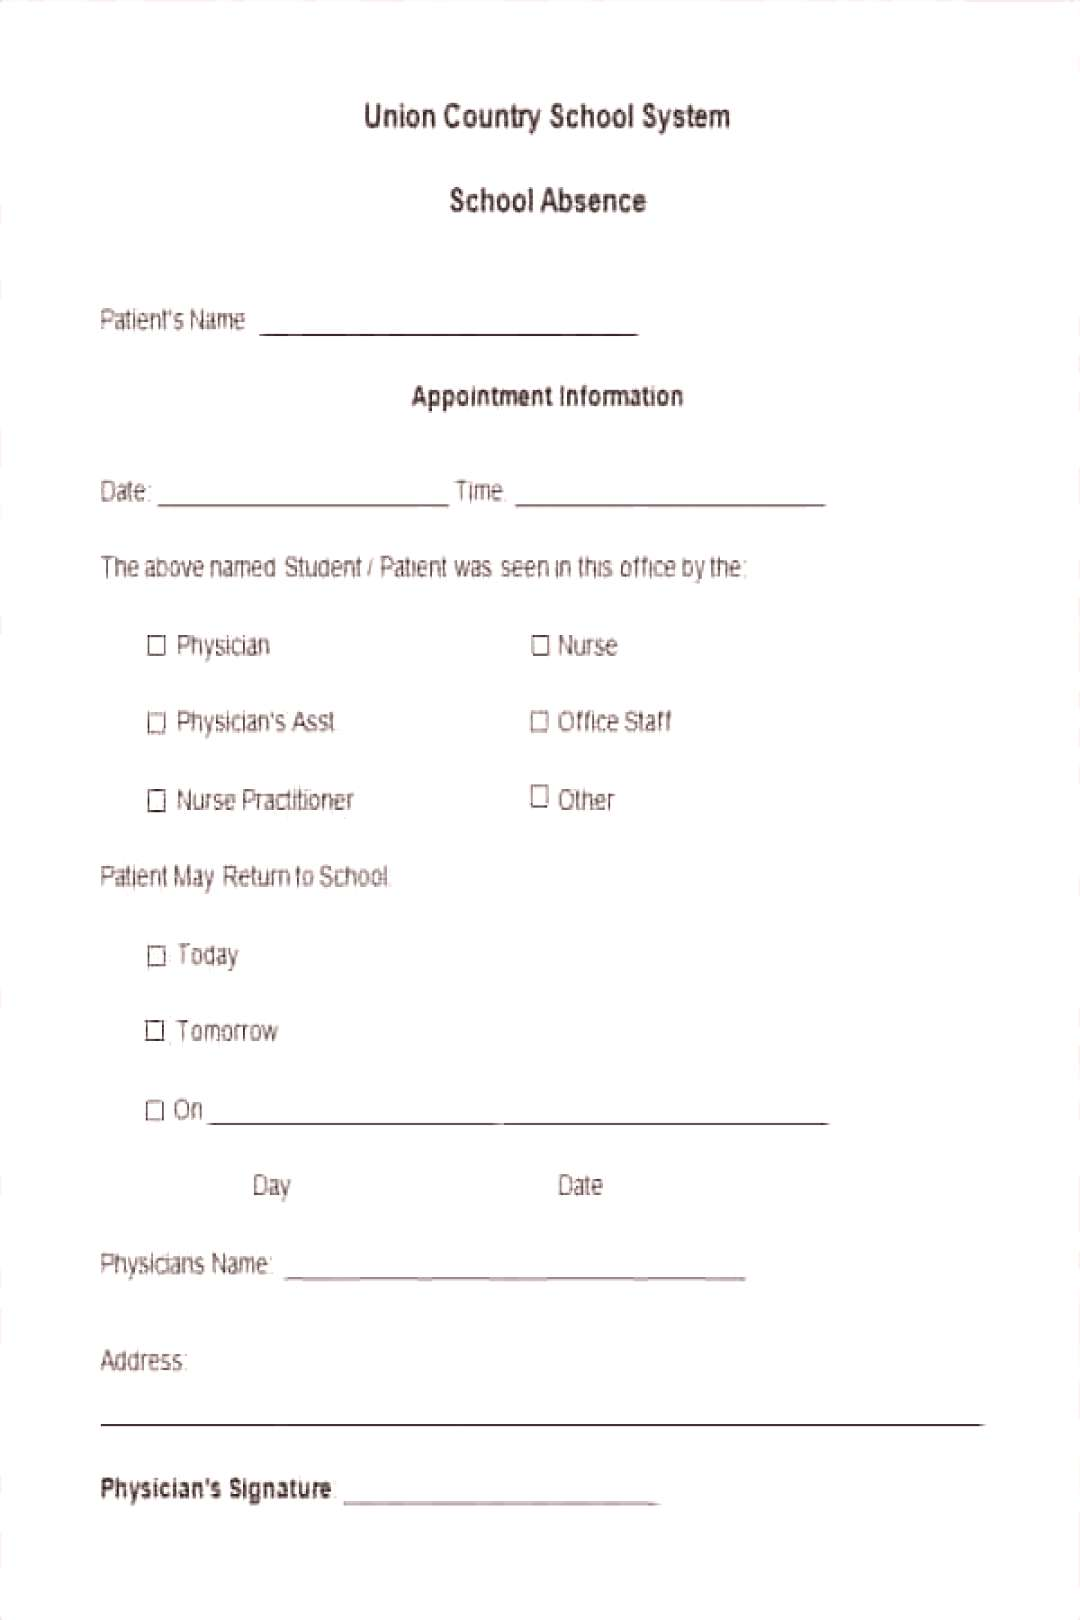 School Absent Letters Lovely Doctors Note Template for School, School Absent Letters Lovely Doctor